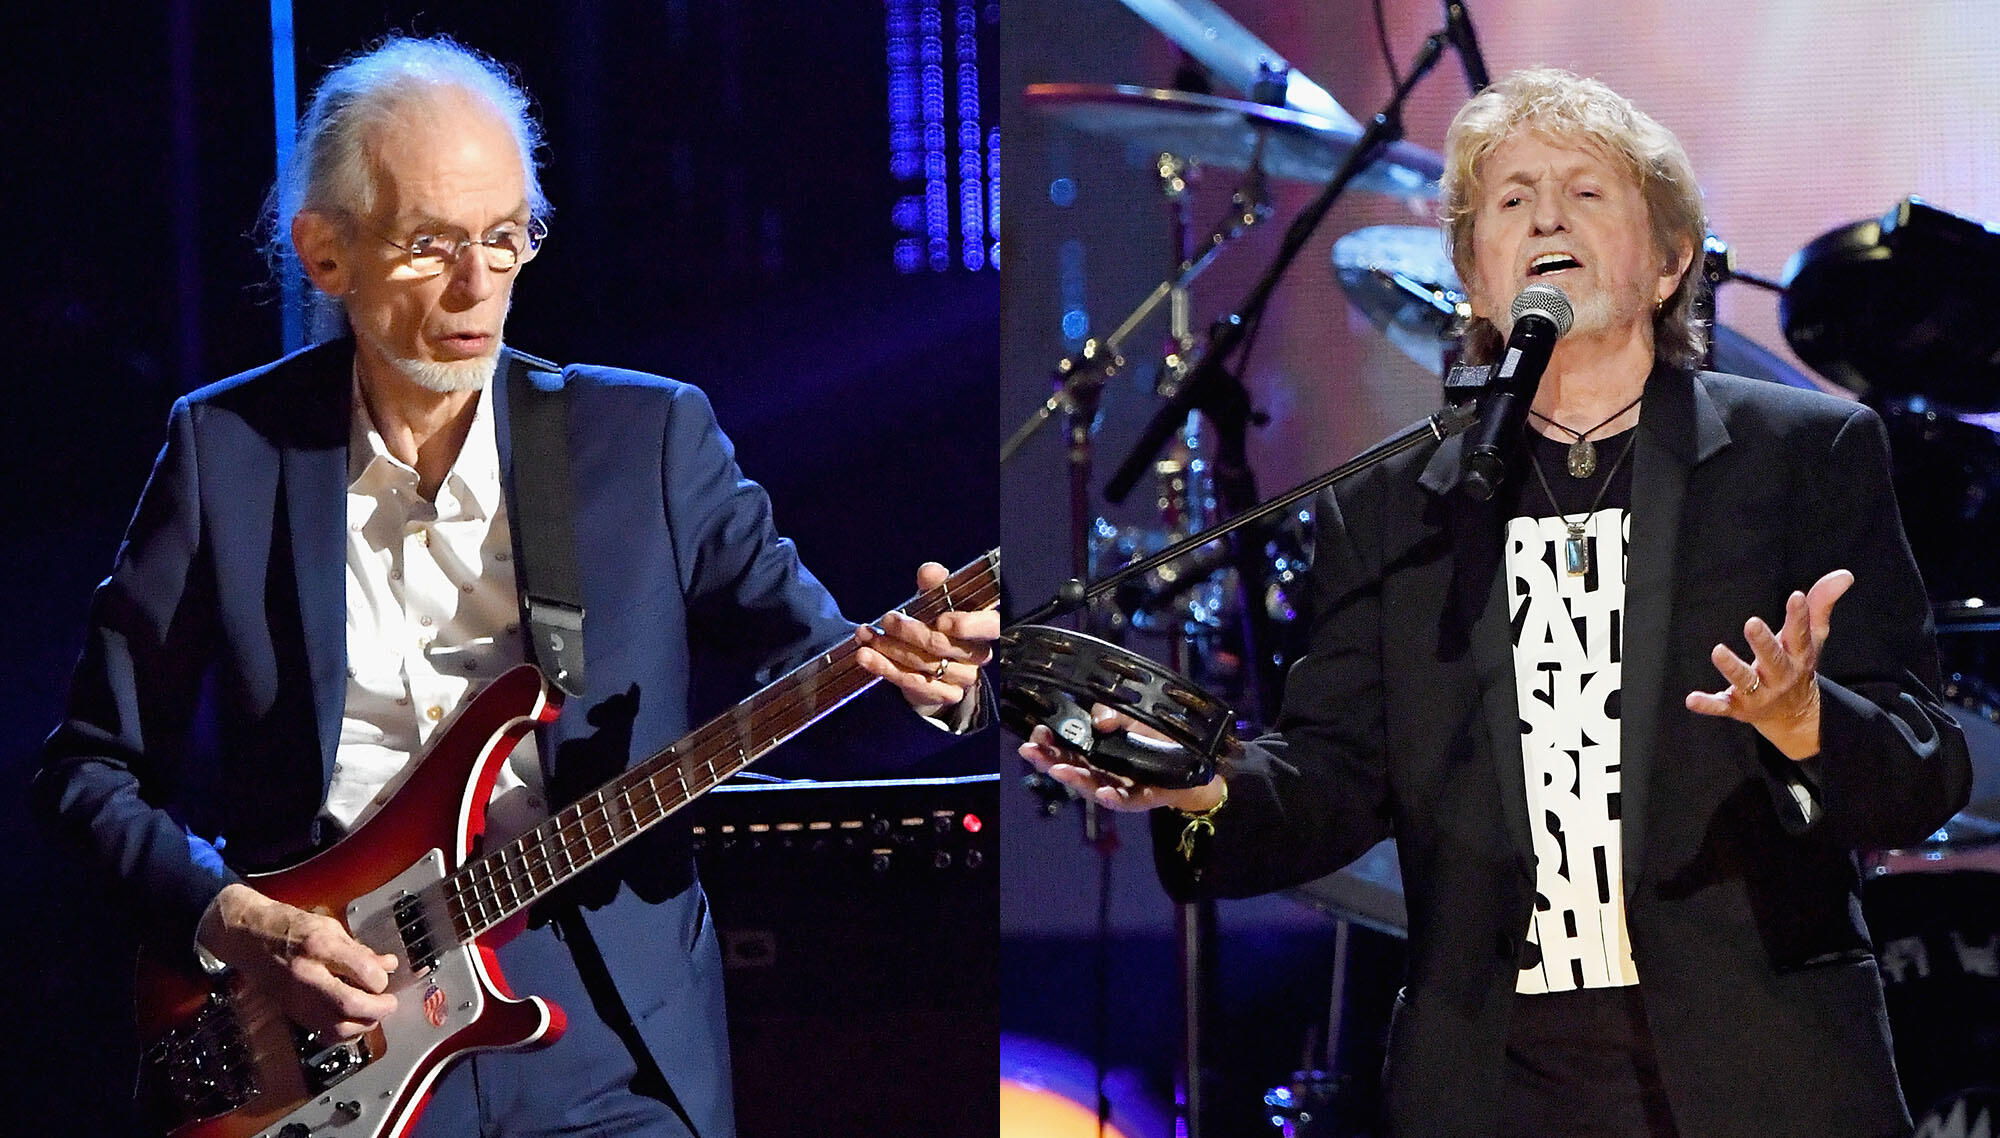 Another Yes Reunion 'Completely Unthinkable' For Steve Howe